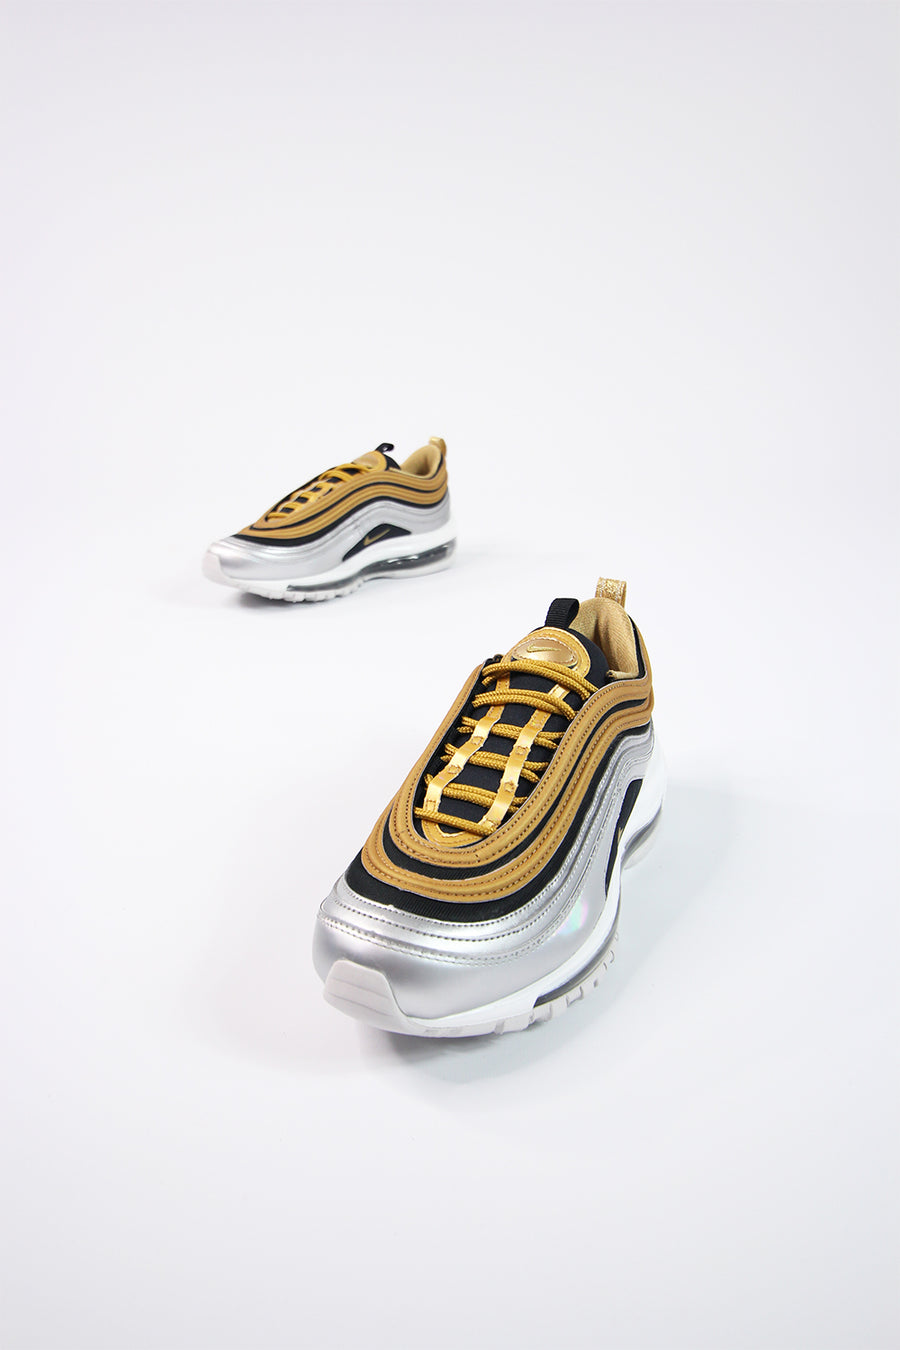 Nike - Air Max 97 Special Edtion Women (Metallic Gold/ Metallic Gold) AQ4137-700